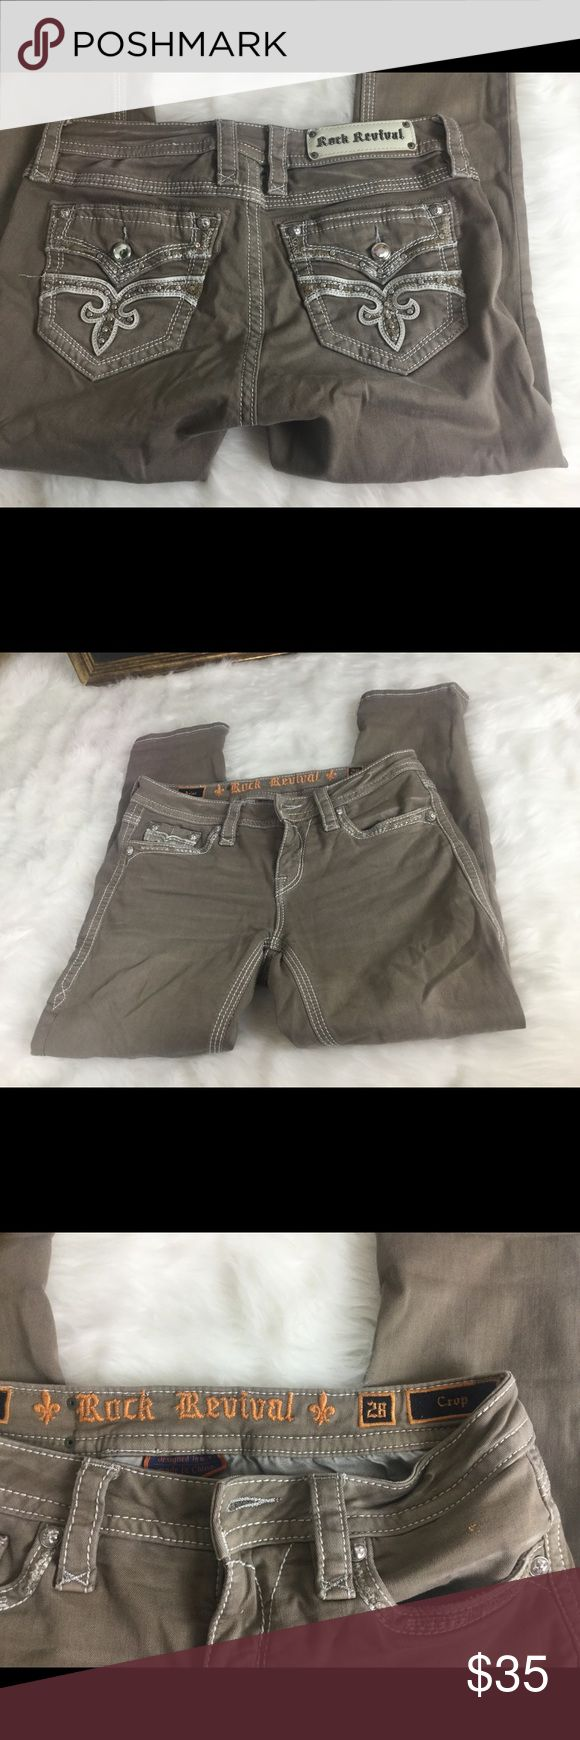 """🆕Listing. Rock Revival Cropped Kakis Jeans. sz 28 Check out these awesome Rock Revival Kakis Sz 28.  Waist 15"""". Inseam. 25"""". Rise 8"""". In good condition.  Great pants! Rock Revival Pants Ankle & Cropped"""